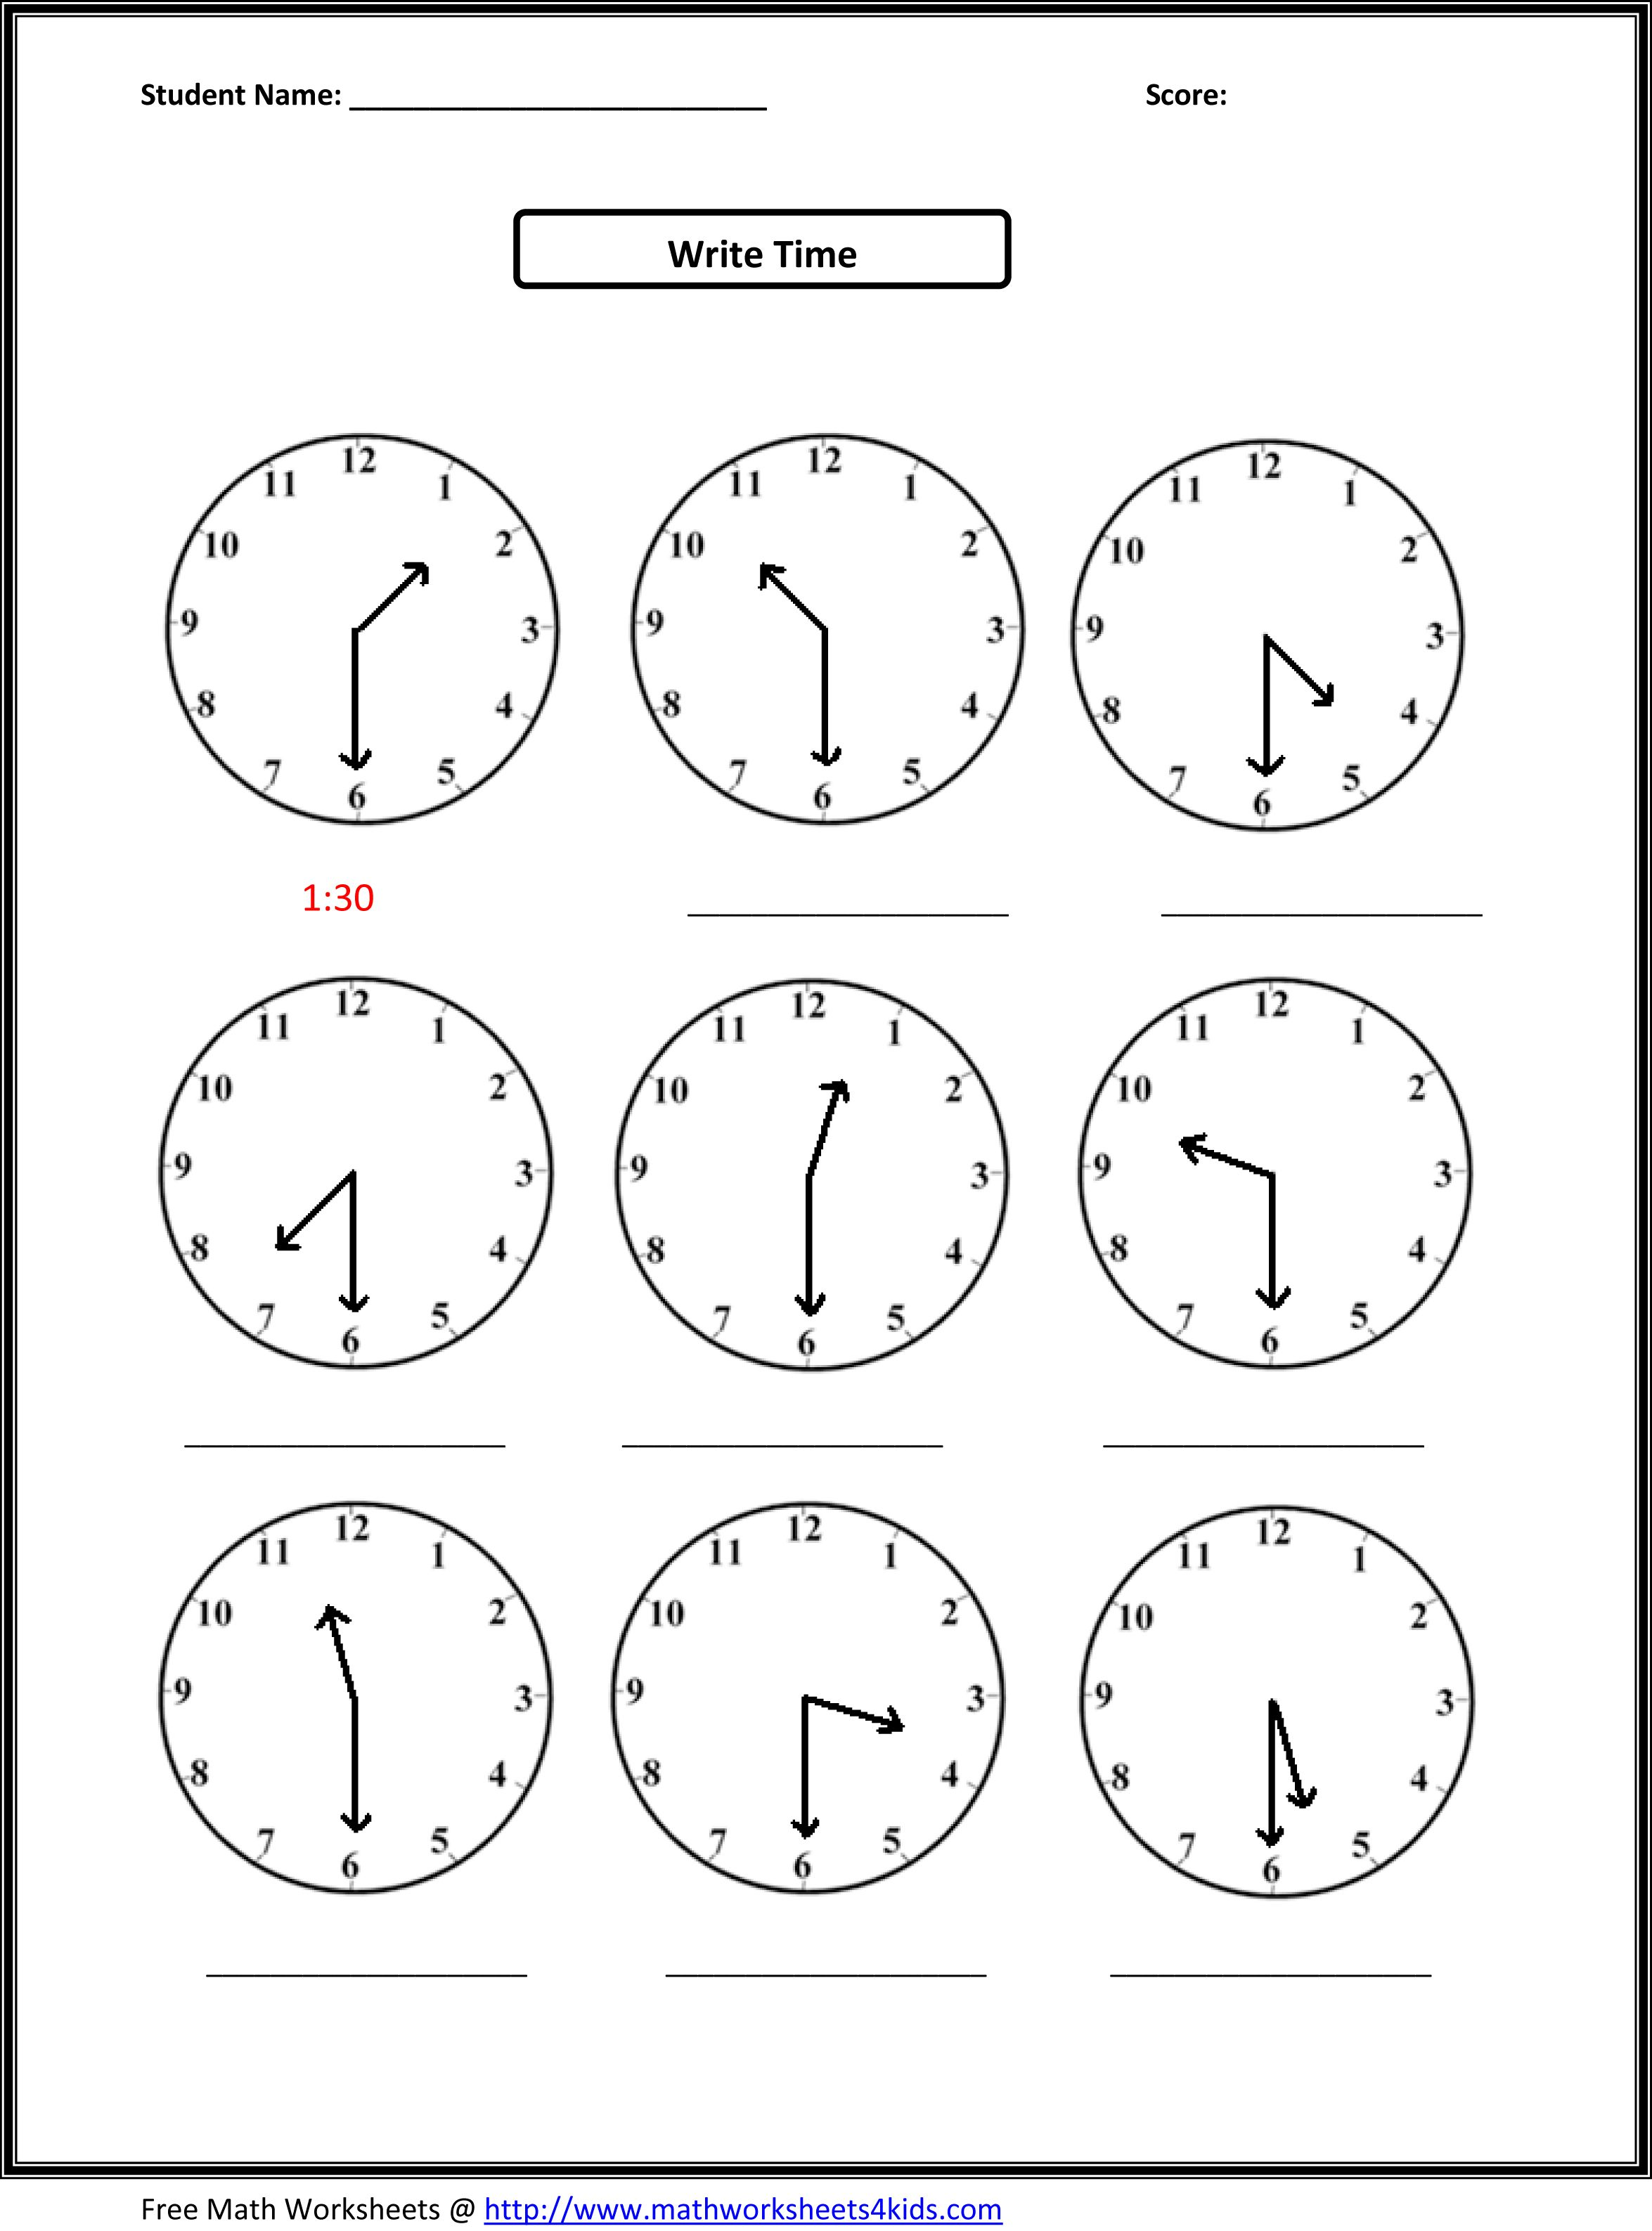 Proatmealus  Remarkable Worksheet On Time For Grade   Reocurent With Extraordinary Free Printable Telling Time Worksheets Nd Grade  Reocurent With Comely Supporting Details Worksheet Also Law Of Universal Gravitation Worksheet In Addition Nd Grade Reading Comprehension Worksheets Pdf And Electronegativity Worksheet Answers As Well As Lewis Structure Worksheet  Additionally Rotational Symmetry Worksheets From Reocurentcom With Proatmealus  Extraordinary Worksheet On Time For Grade   Reocurent With Comely Free Printable Telling Time Worksheets Nd Grade  Reocurent And Remarkable Supporting Details Worksheet Also Law Of Universal Gravitation Worksheet In Addition Nd Grade Reading Comprehension Worksheets Pdf From Reocurentcom